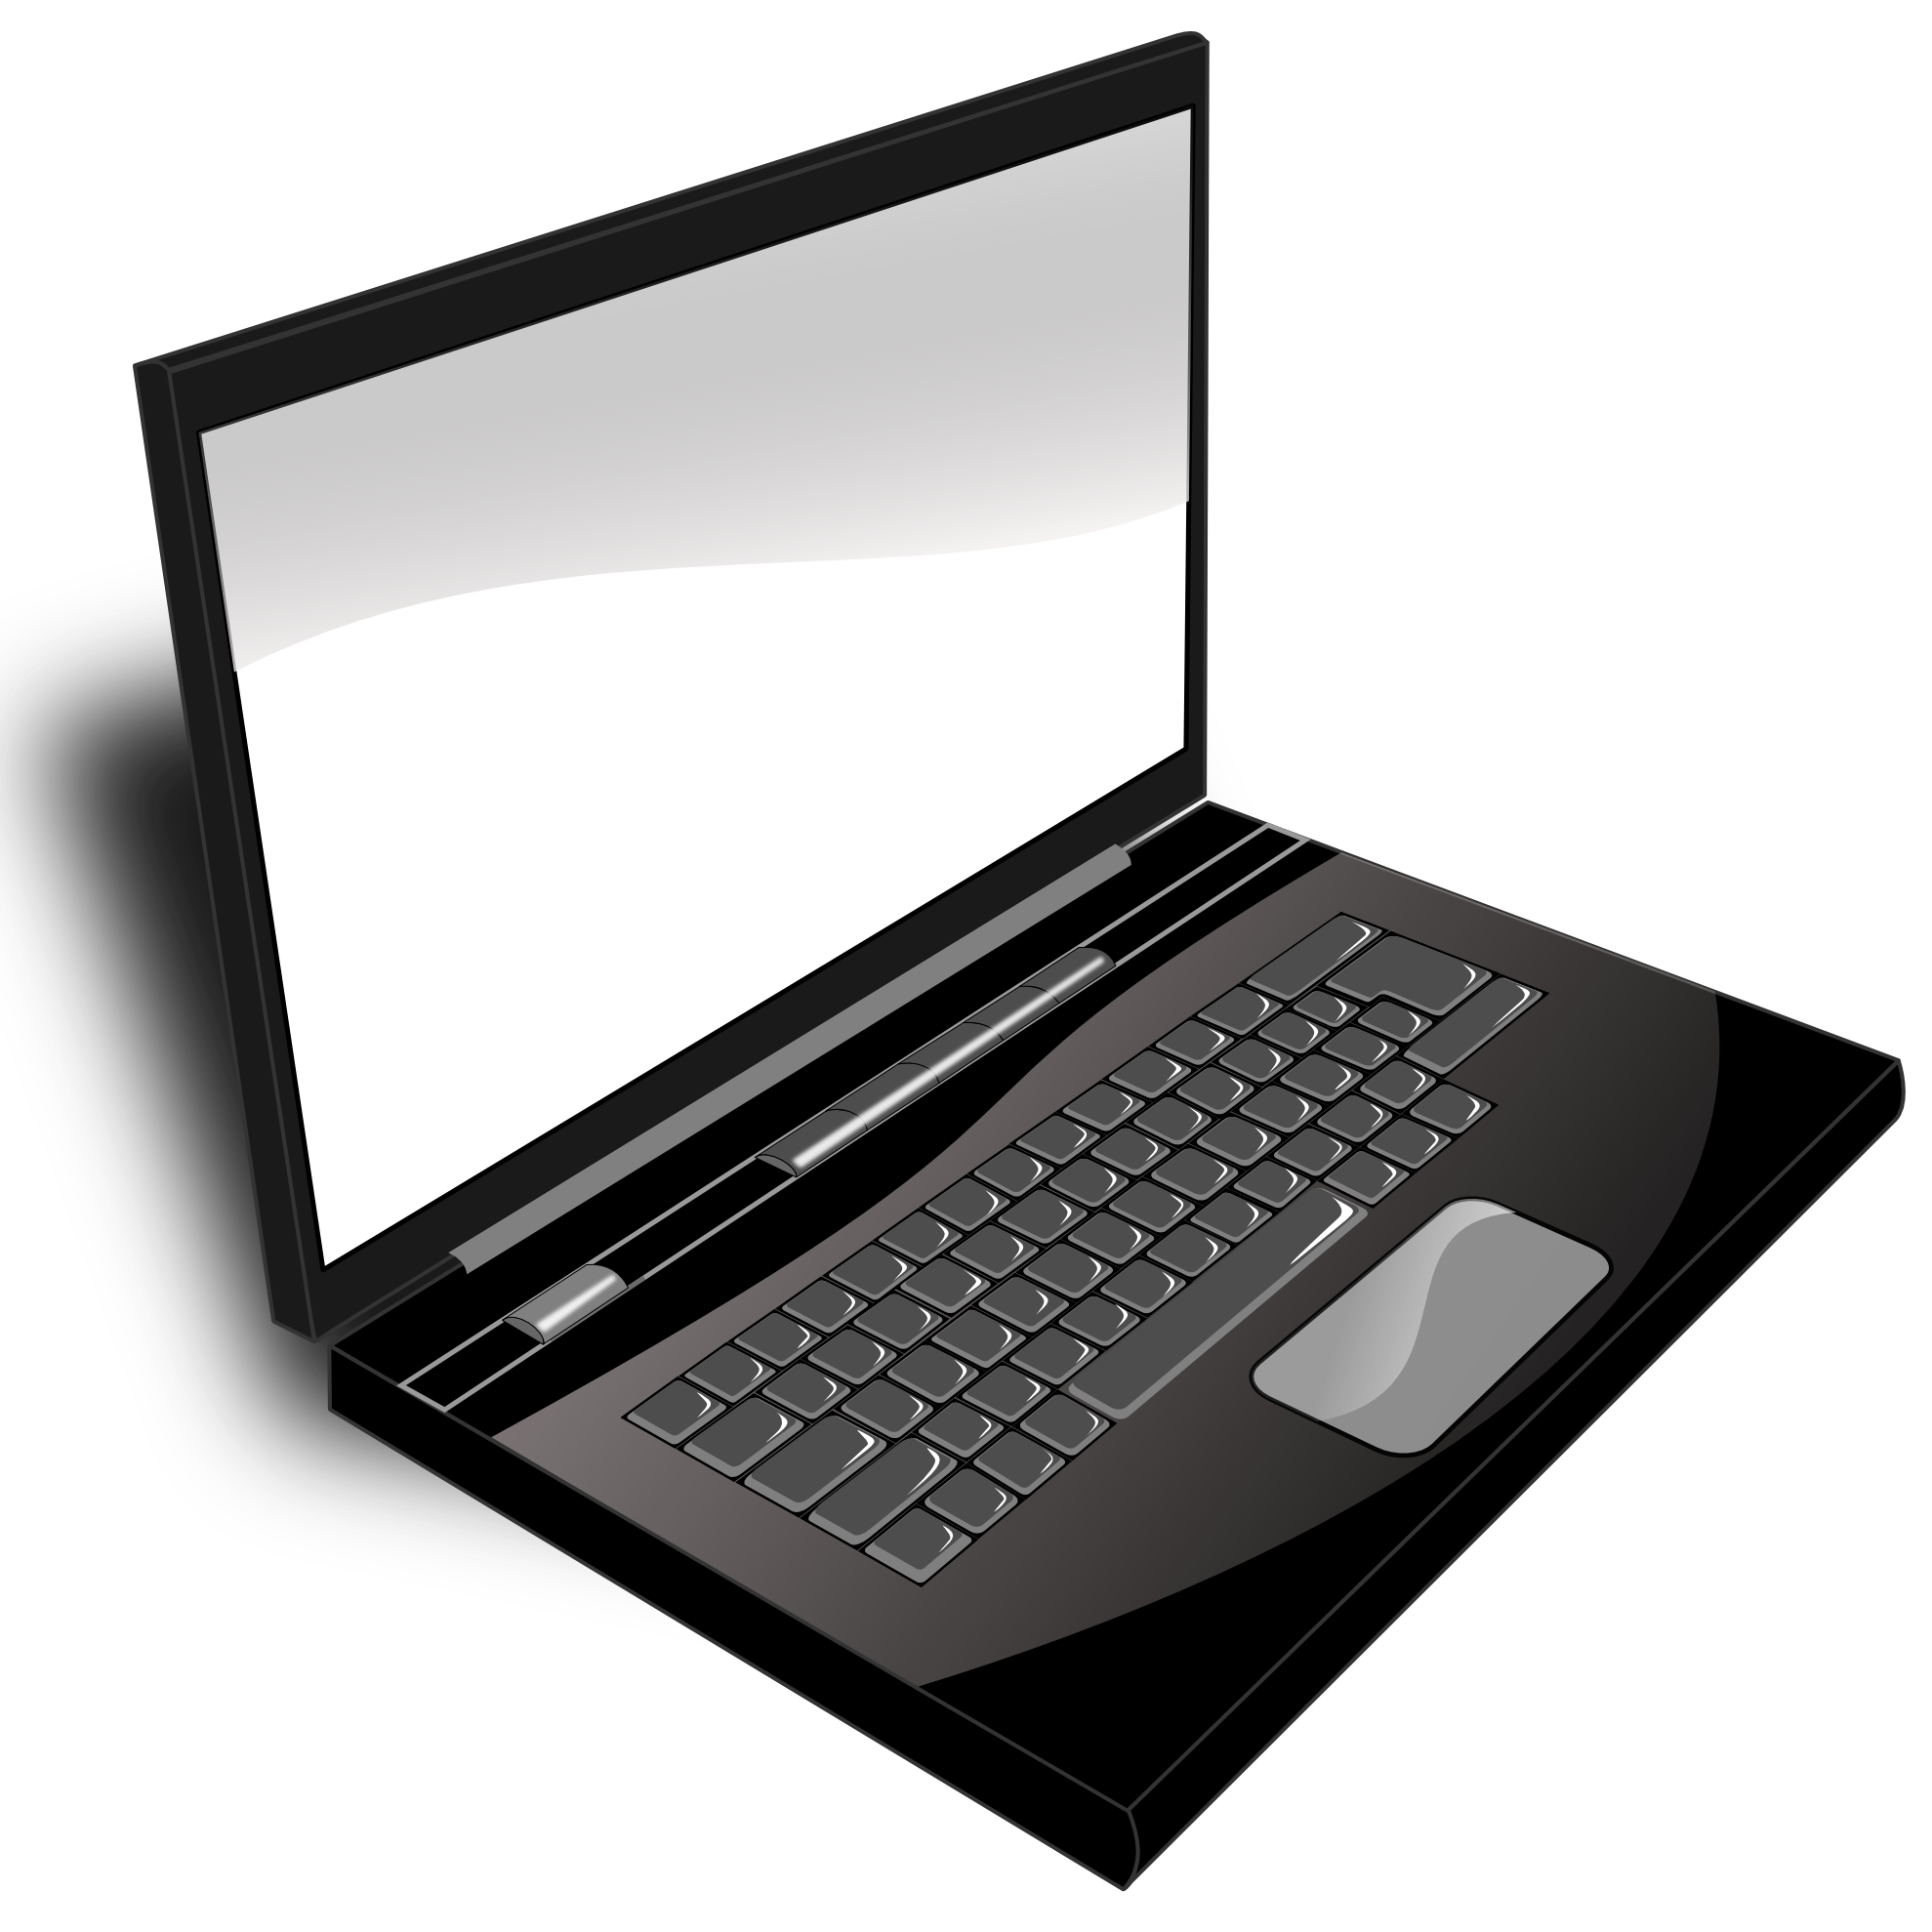 Laptop Clipart Pictures.